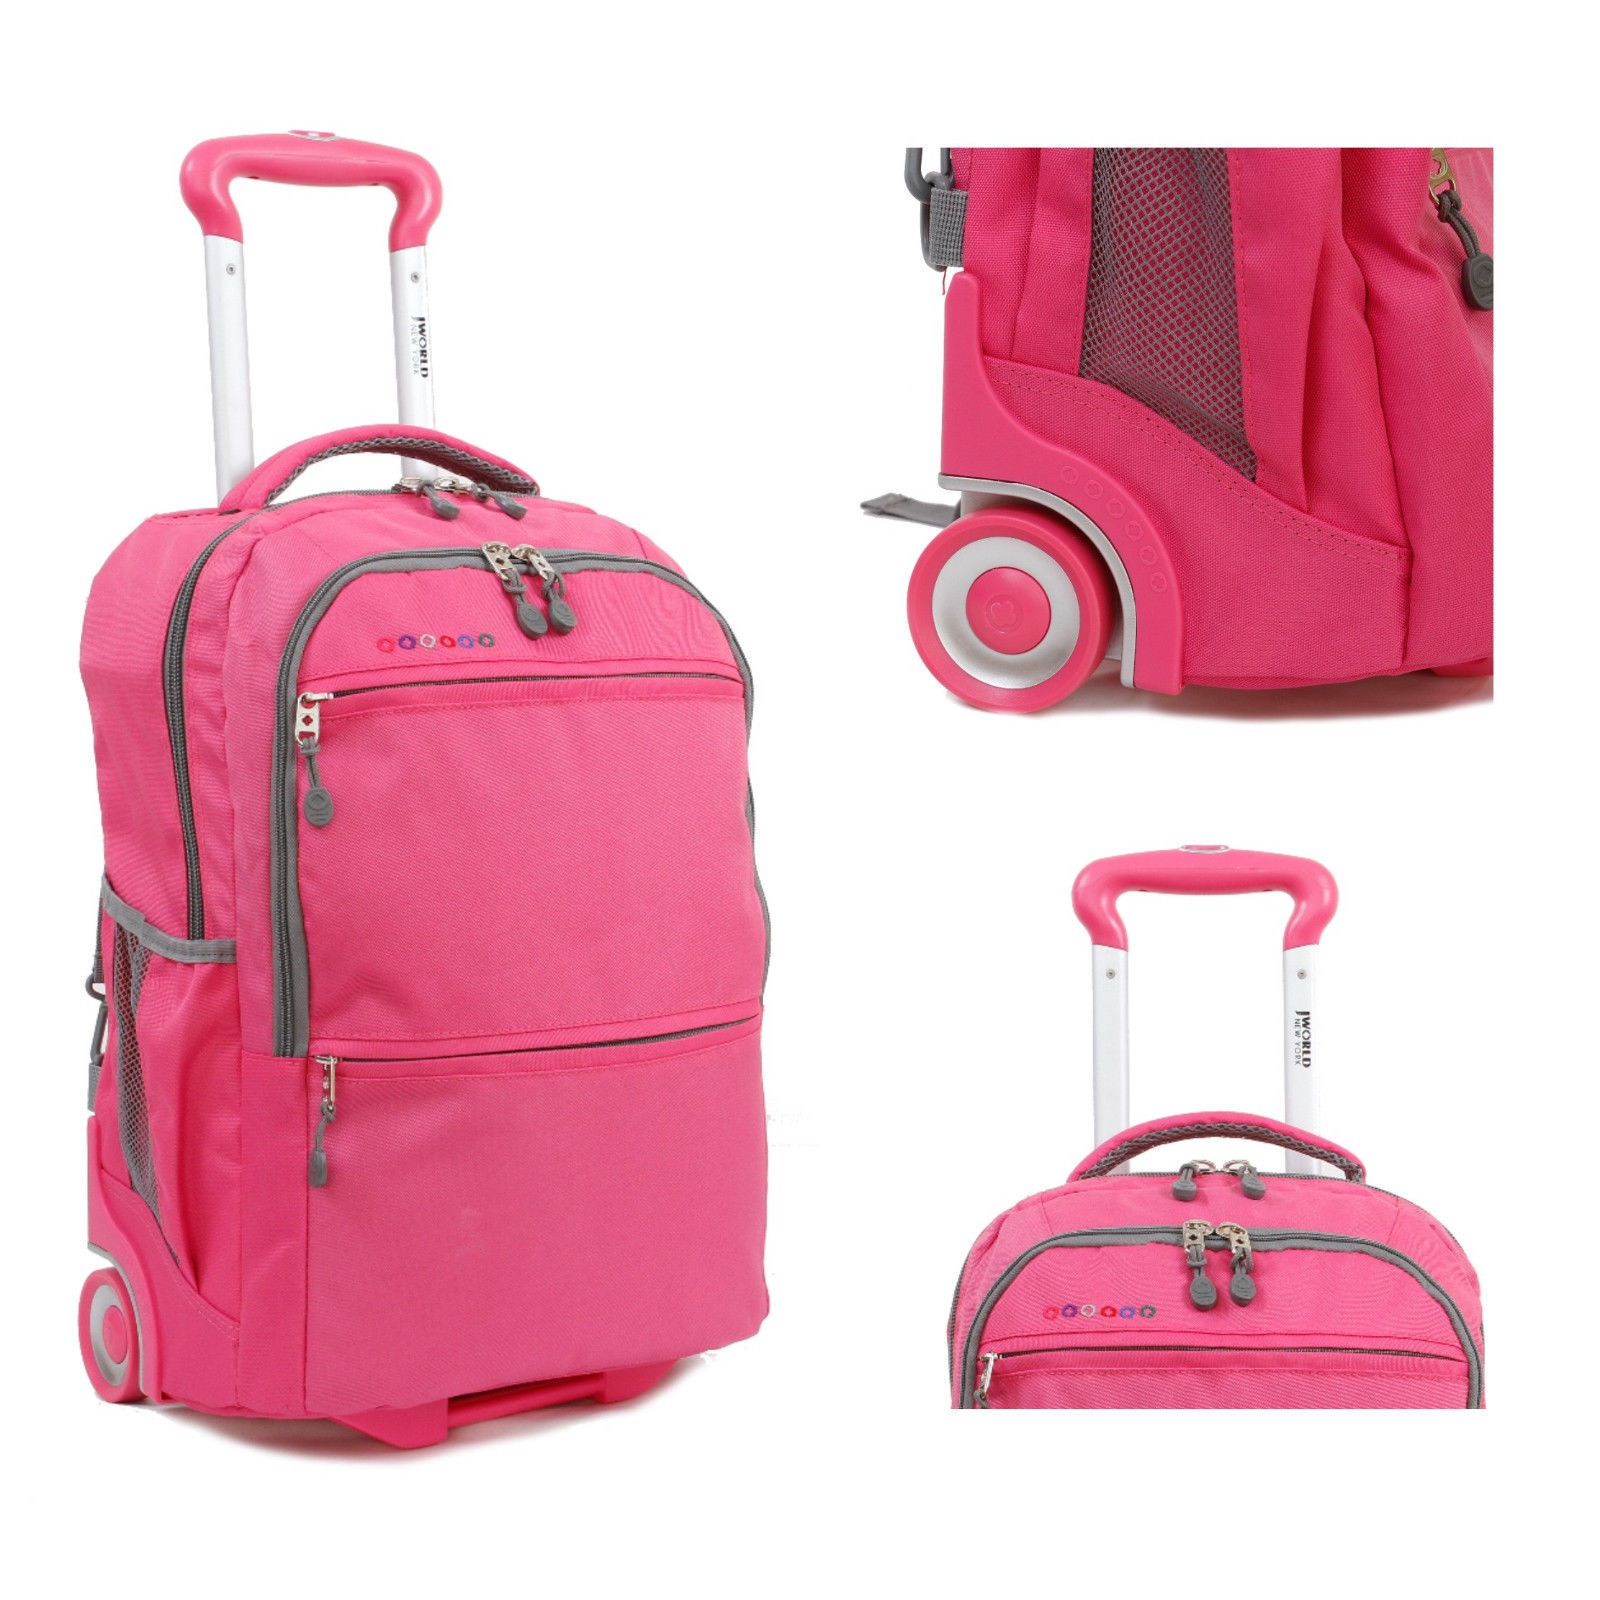 00053337a020 Buy Brand New  Pink Student  Rolling  Backpack Girls School Wheeled Laptop  Book Bag Carry On Luggage